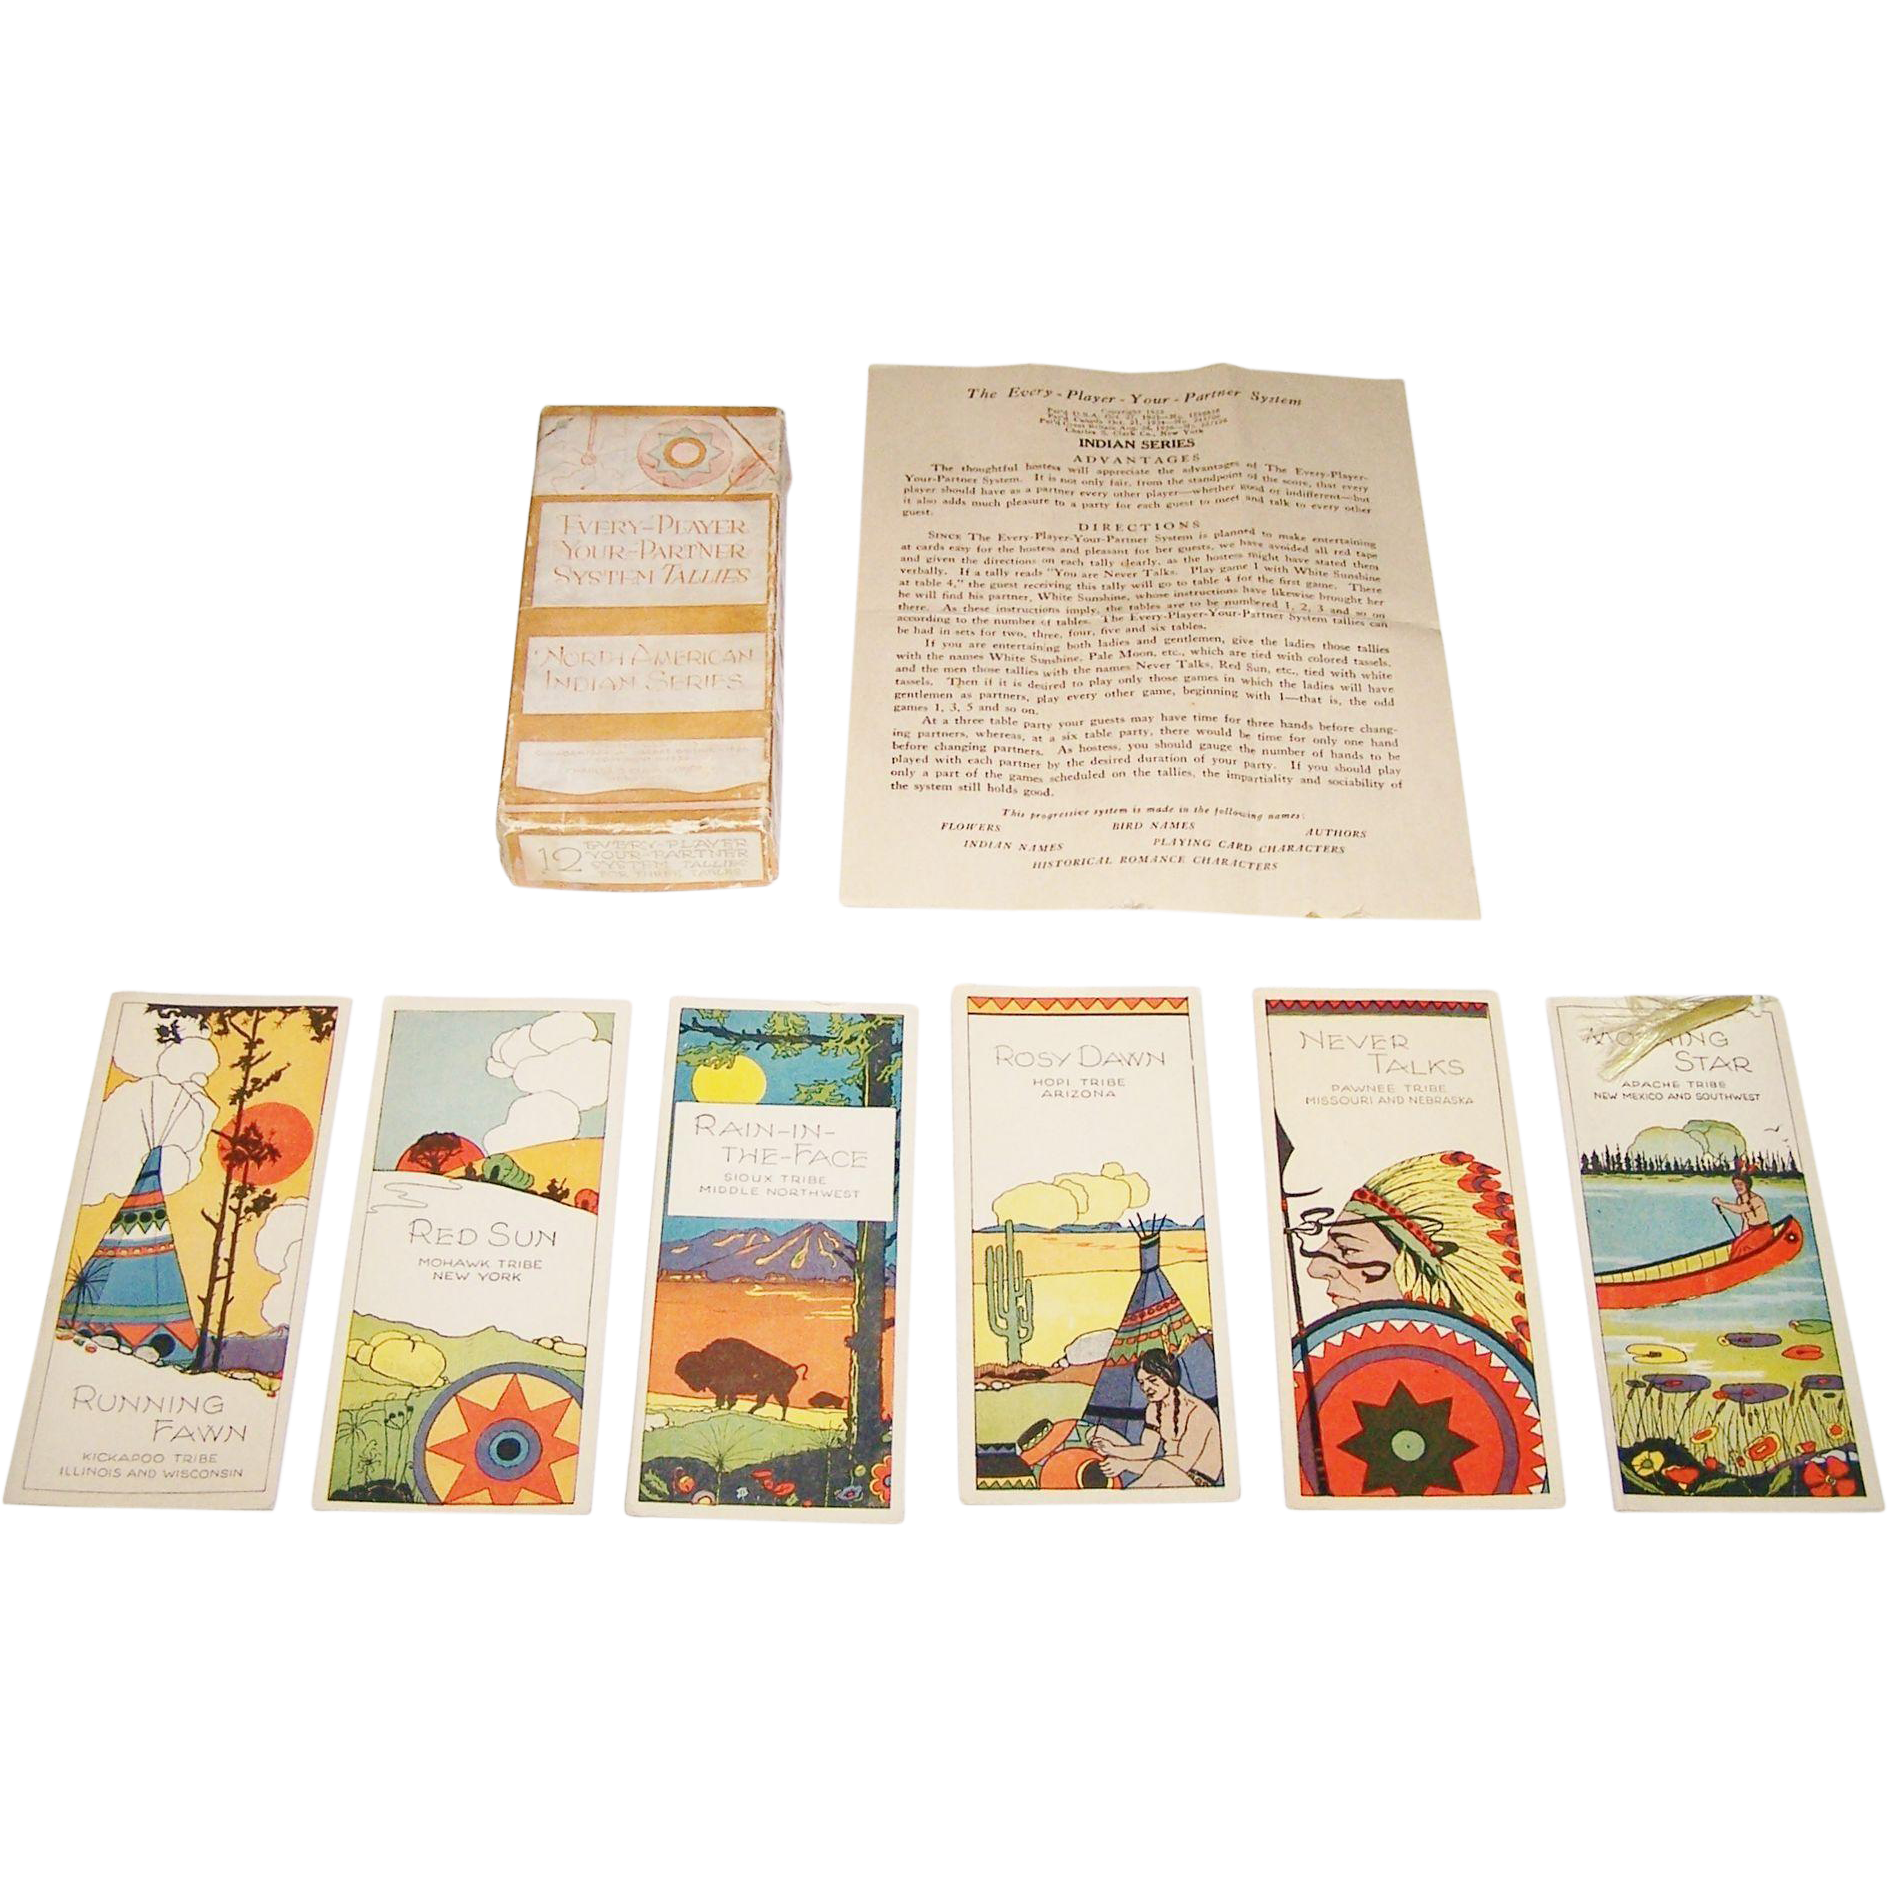 "Chas. S. Clark ""Every Player Your Partner"" Three Table Auction Bridge Tallies (12/12), ""North American Indian Series,"" c.1925"